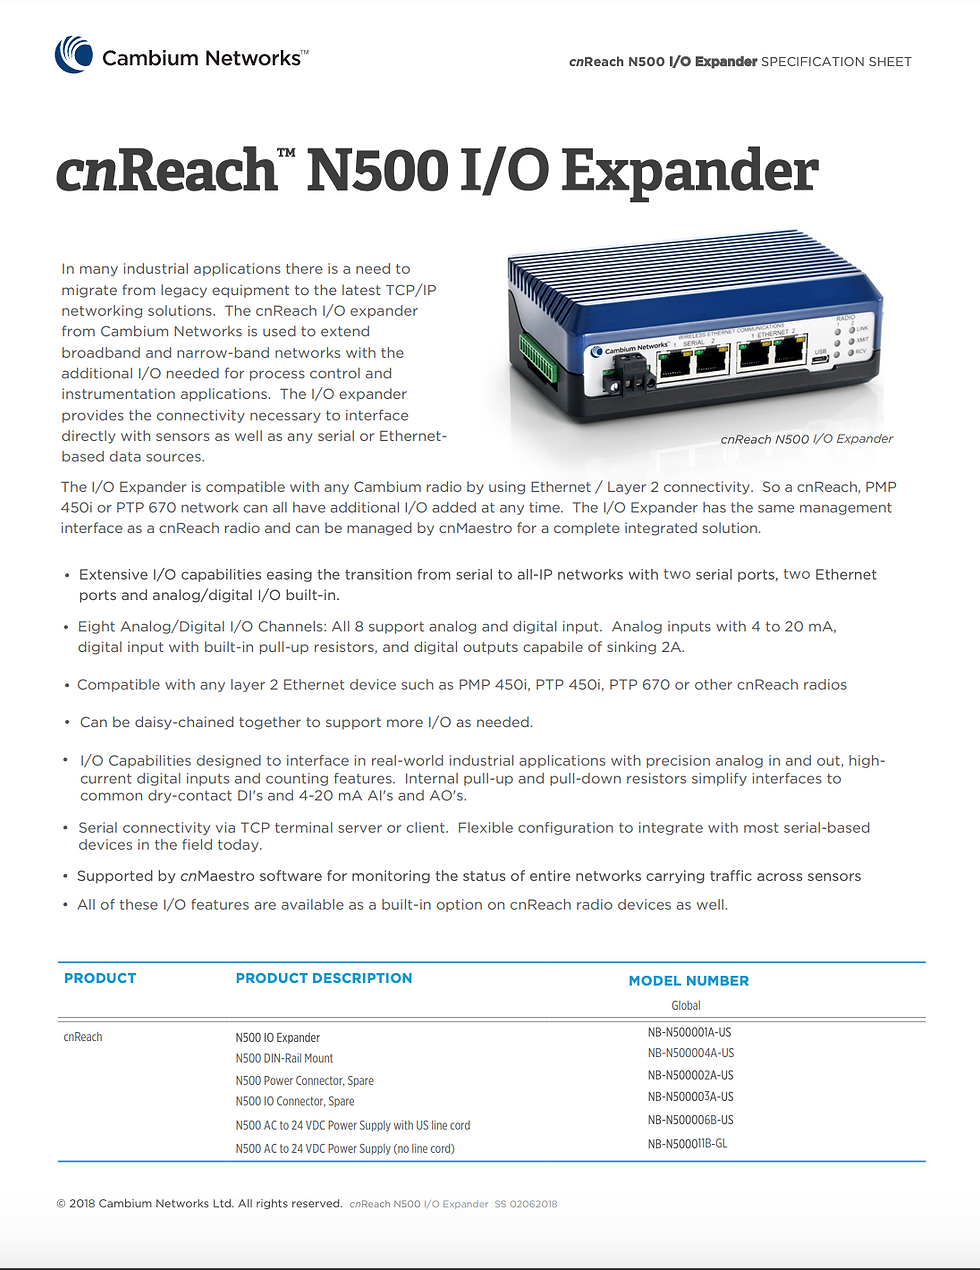 cnReach N500 IO Expander Specifications Sheet